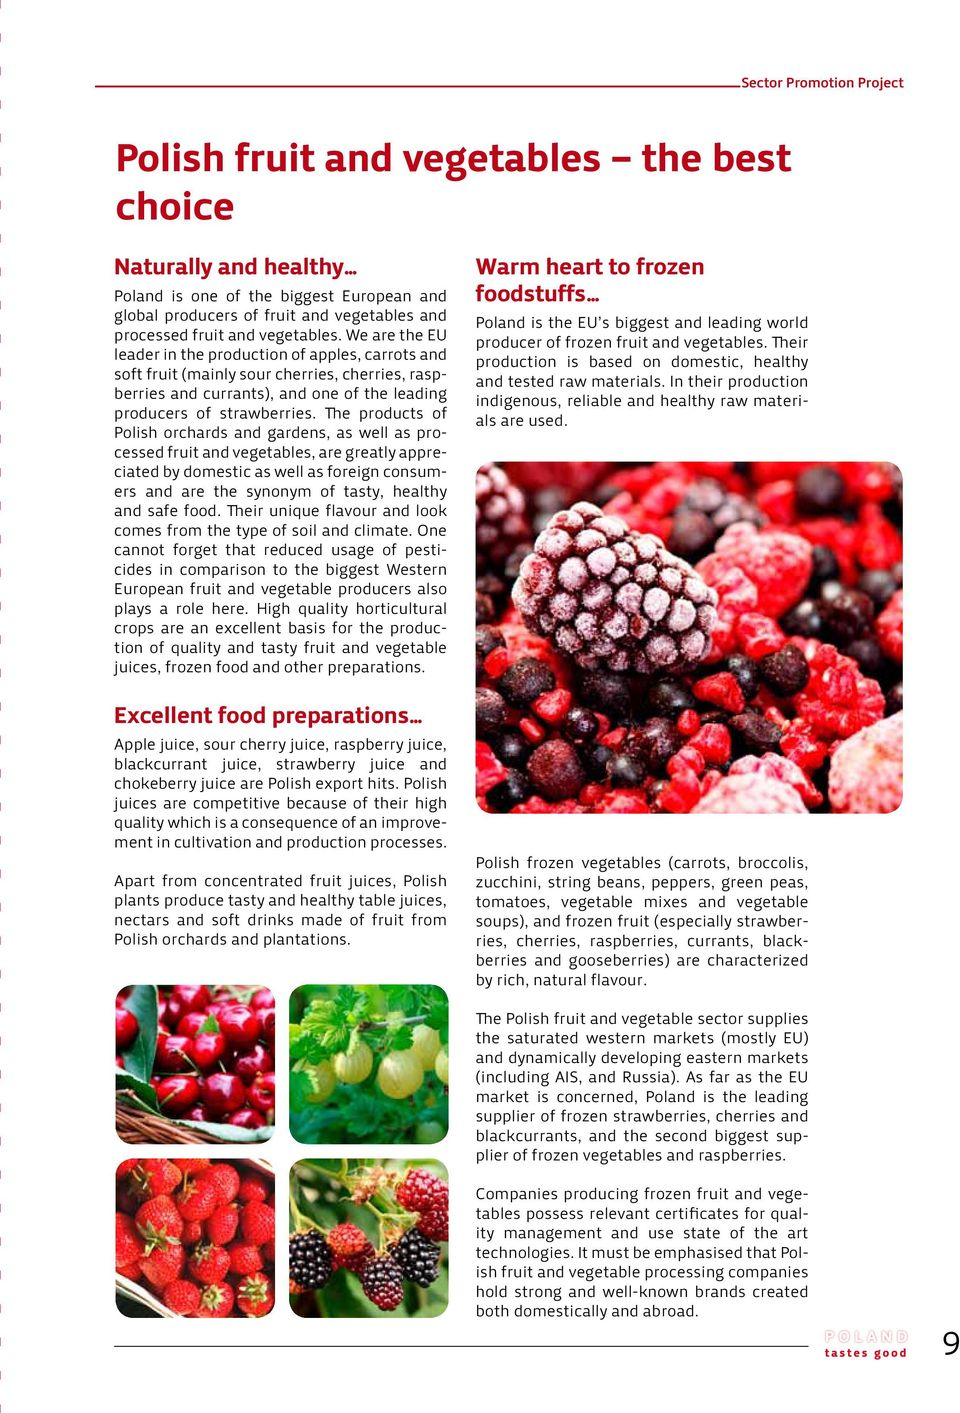 The products of Polish orchards and gardens, as well as processed fruit and vegetables, are greatly appreciated by domestic as well as foreign consumers and are the synonym of tasty, healthy and safe